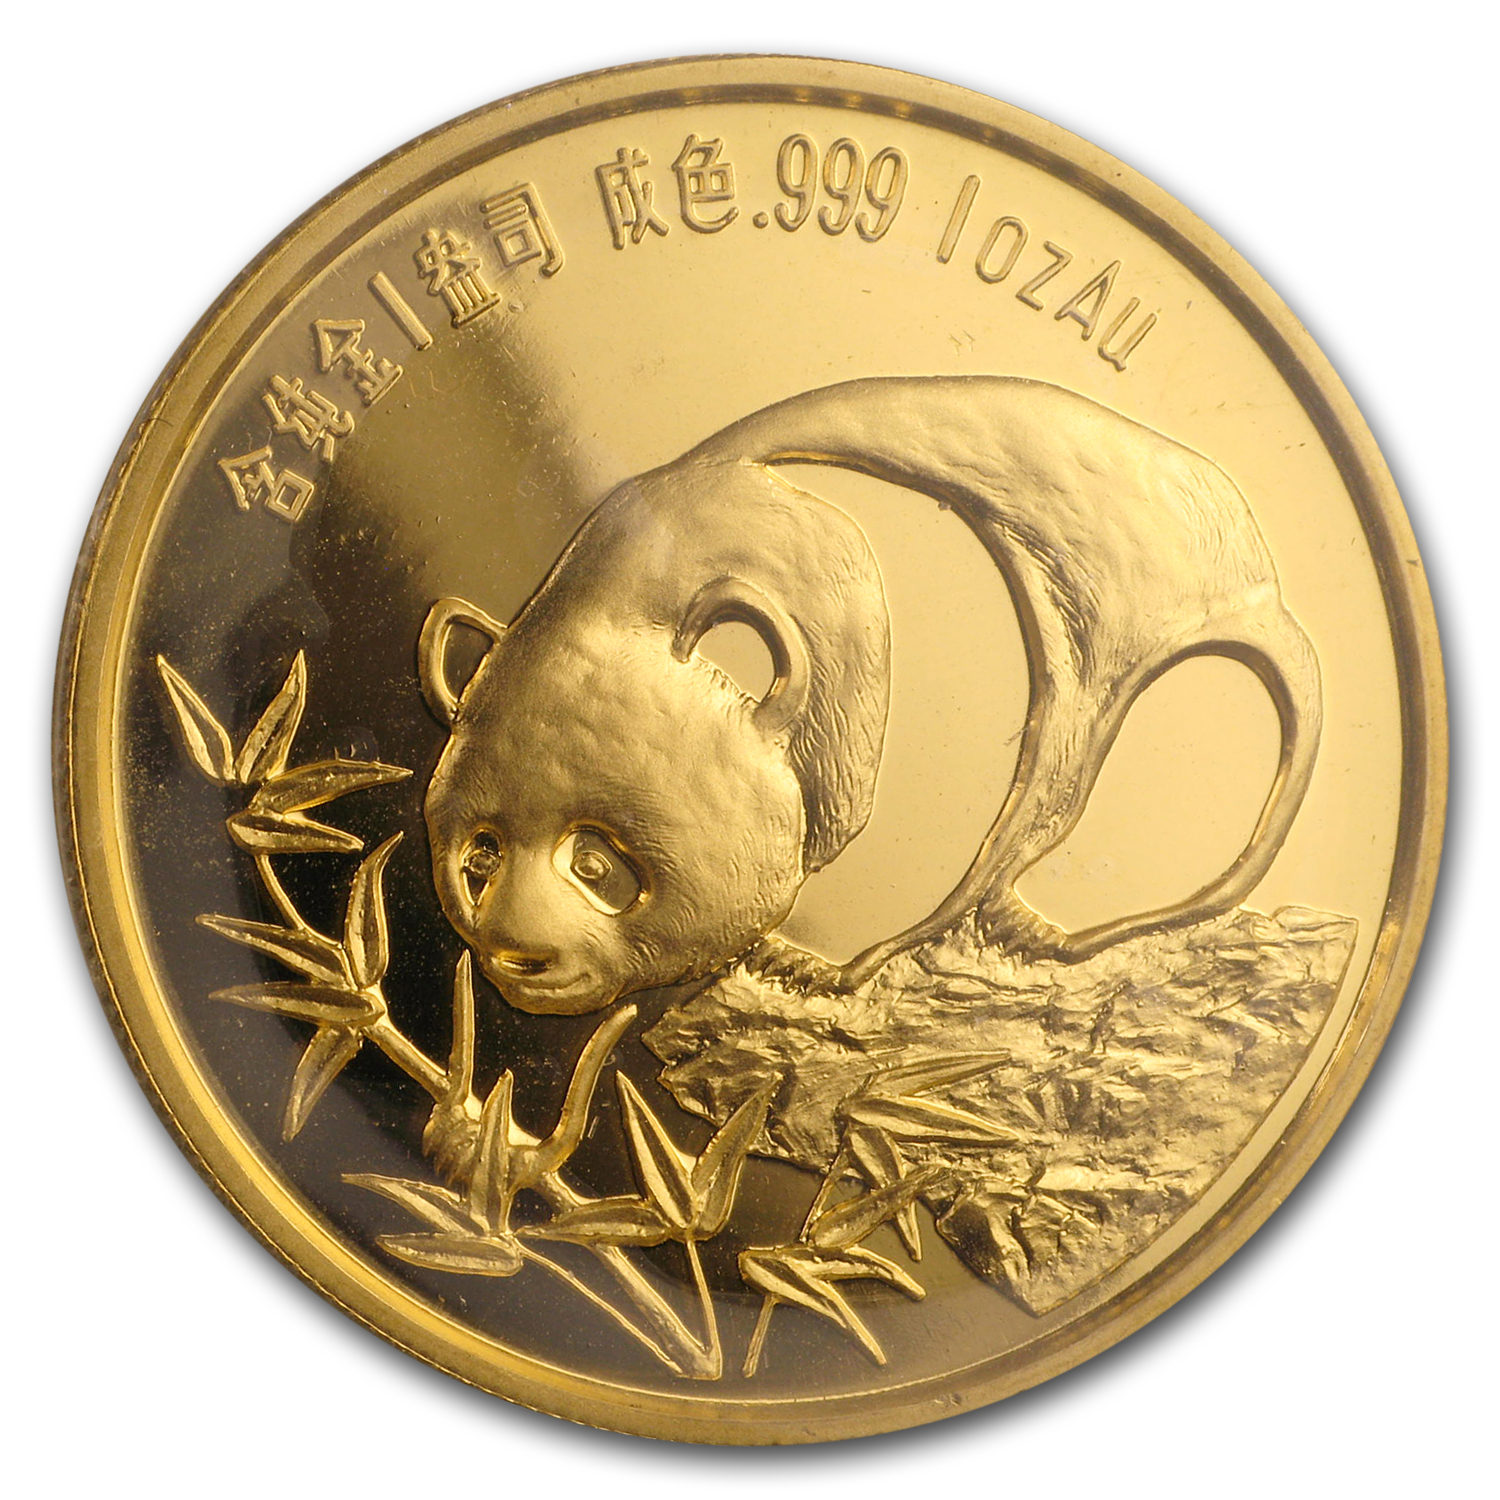 1987 China 1 oz Gold Panda Proof (New Orleans Sino Friendship)